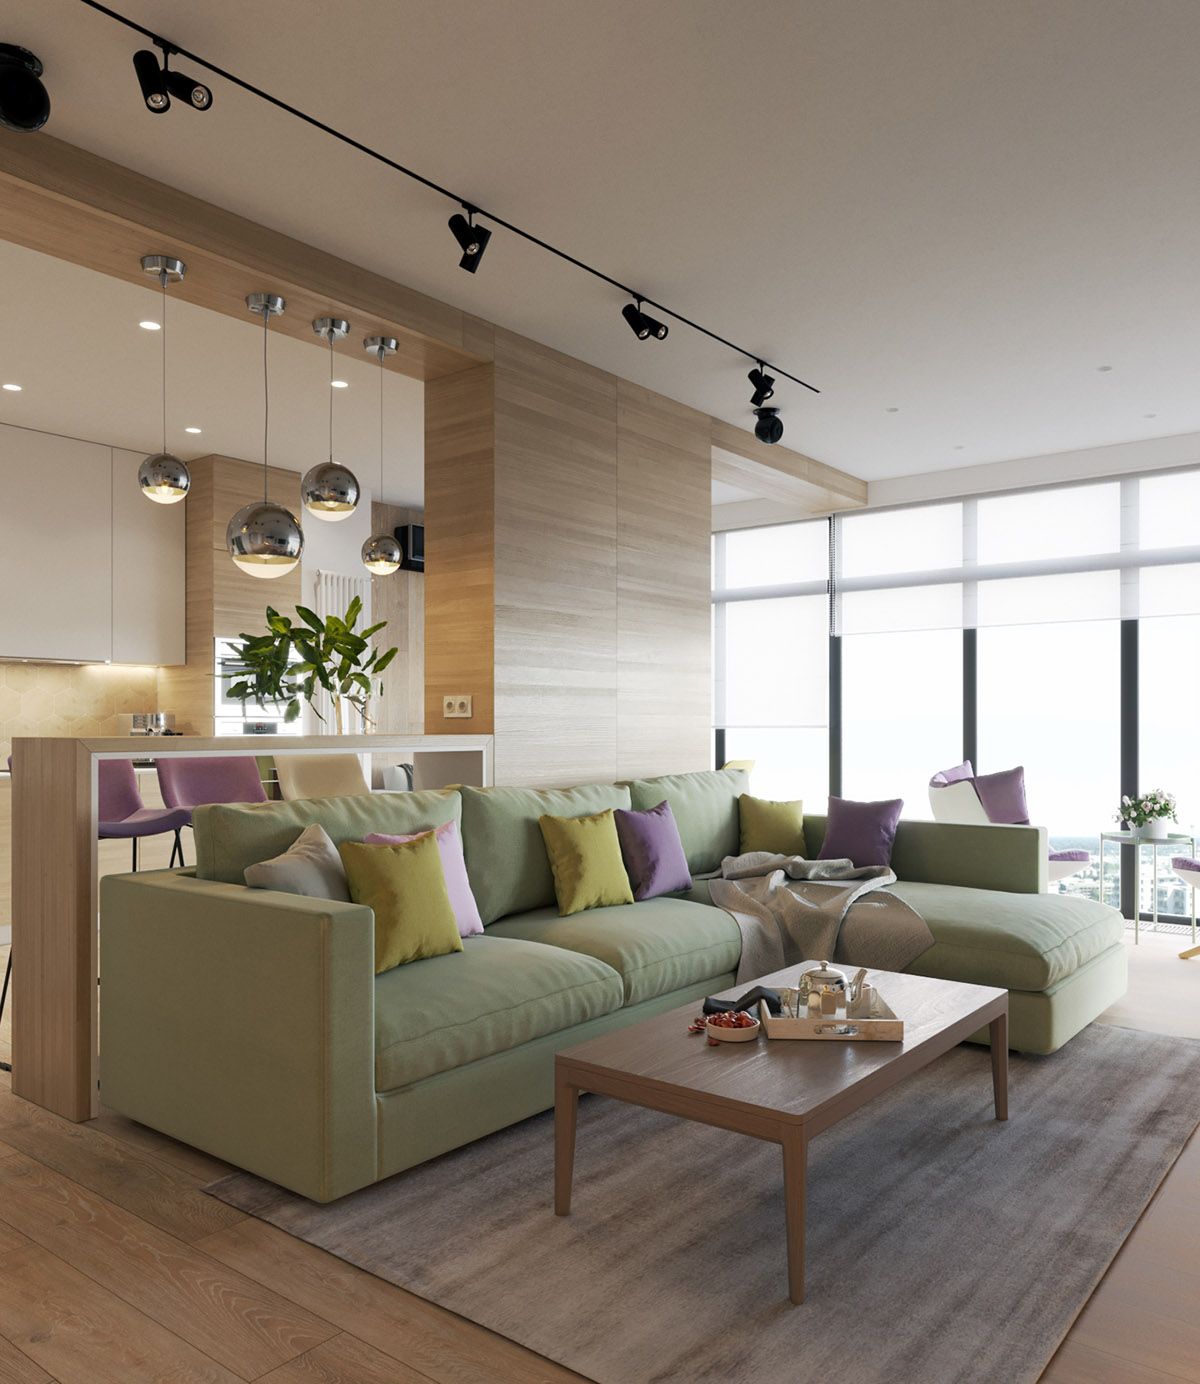 Modern House Design Using a Wooden Accent and Pastel Color Scheme ...